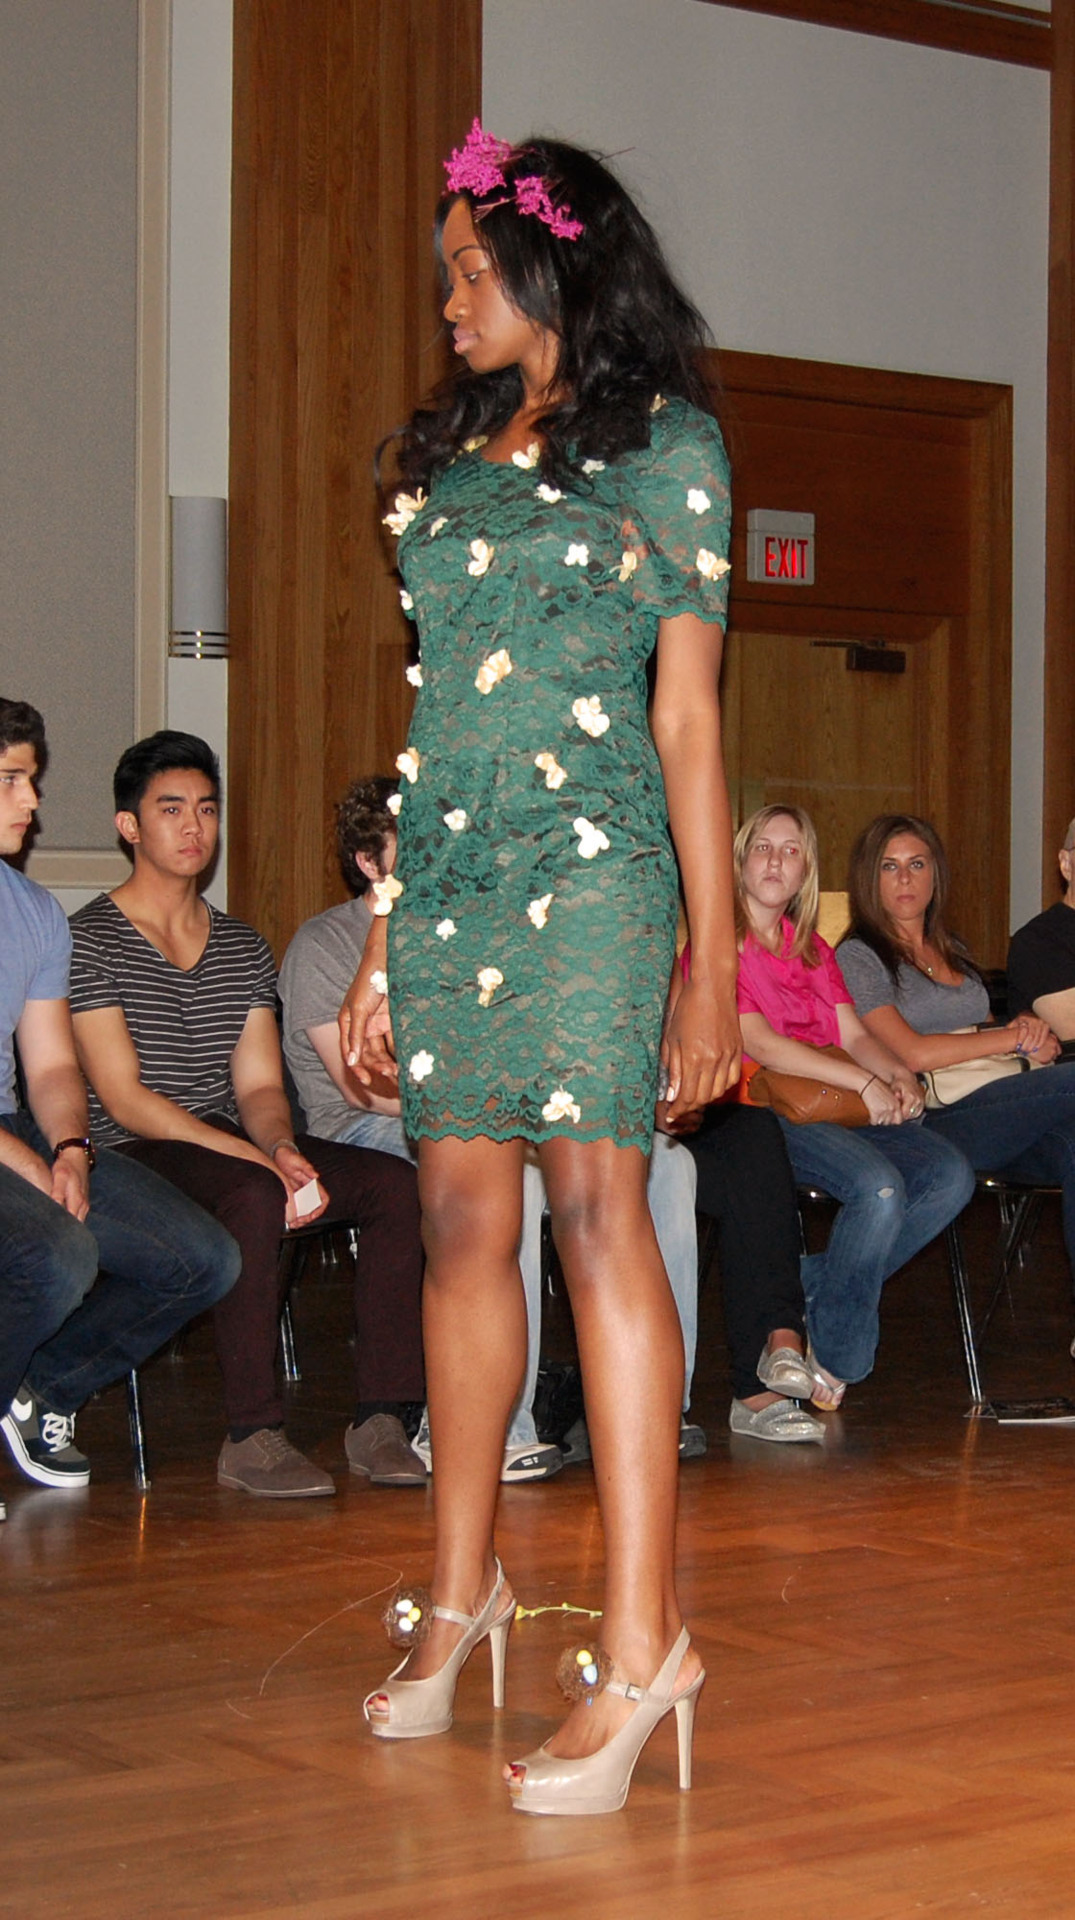 One of the looks from our first fashion show at the University of North Texas. This look features the Guinevere Dress that we recently sold on Etsy. Visit our shop to see more awesome vintage pieces! - Monica